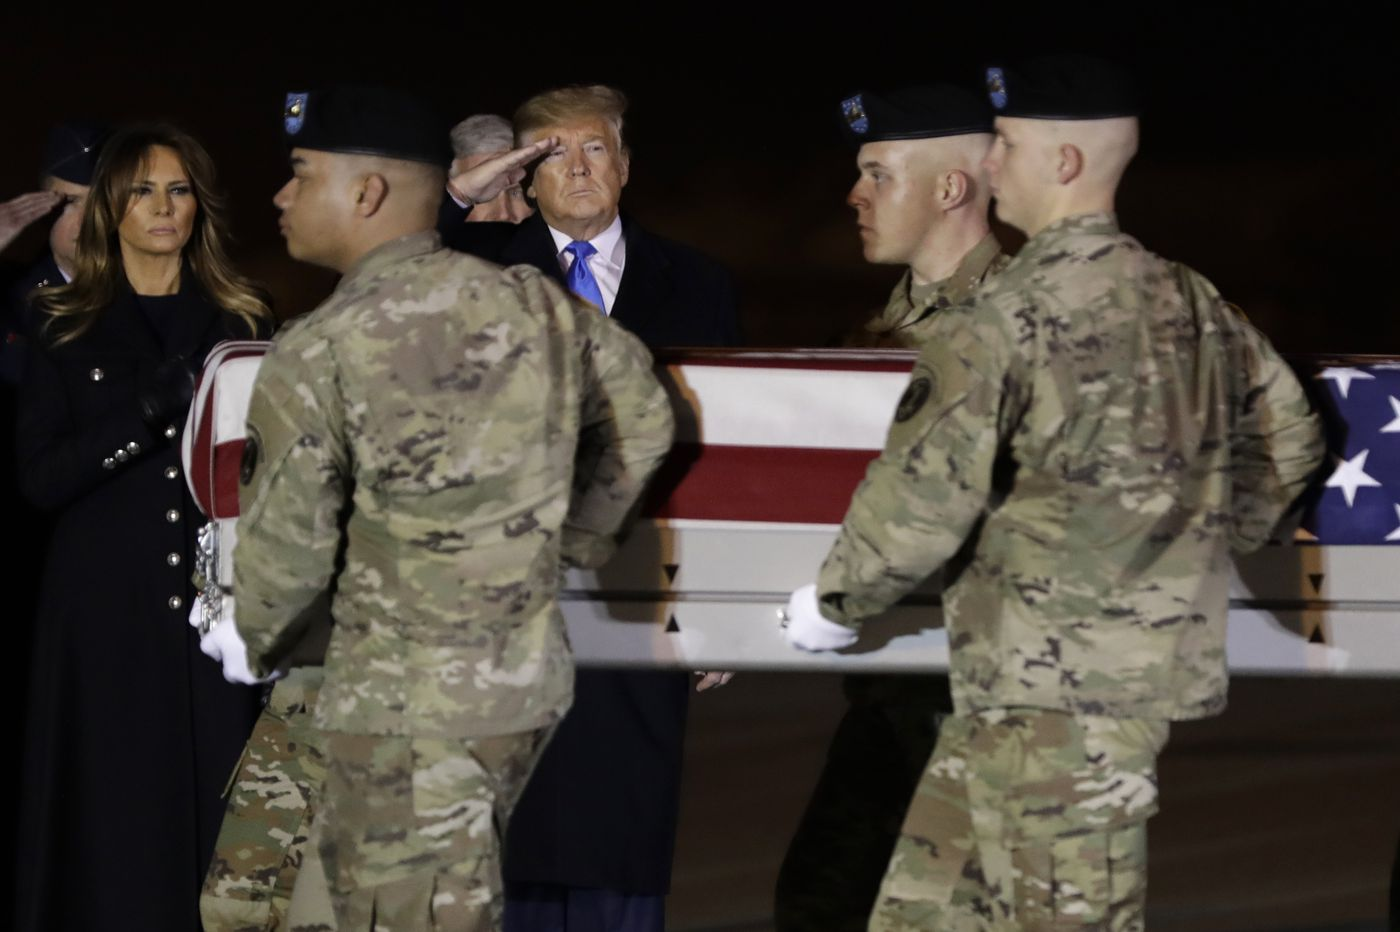 Trump makes unscheduled visit to Dover to receive remains of two fallen soldiers